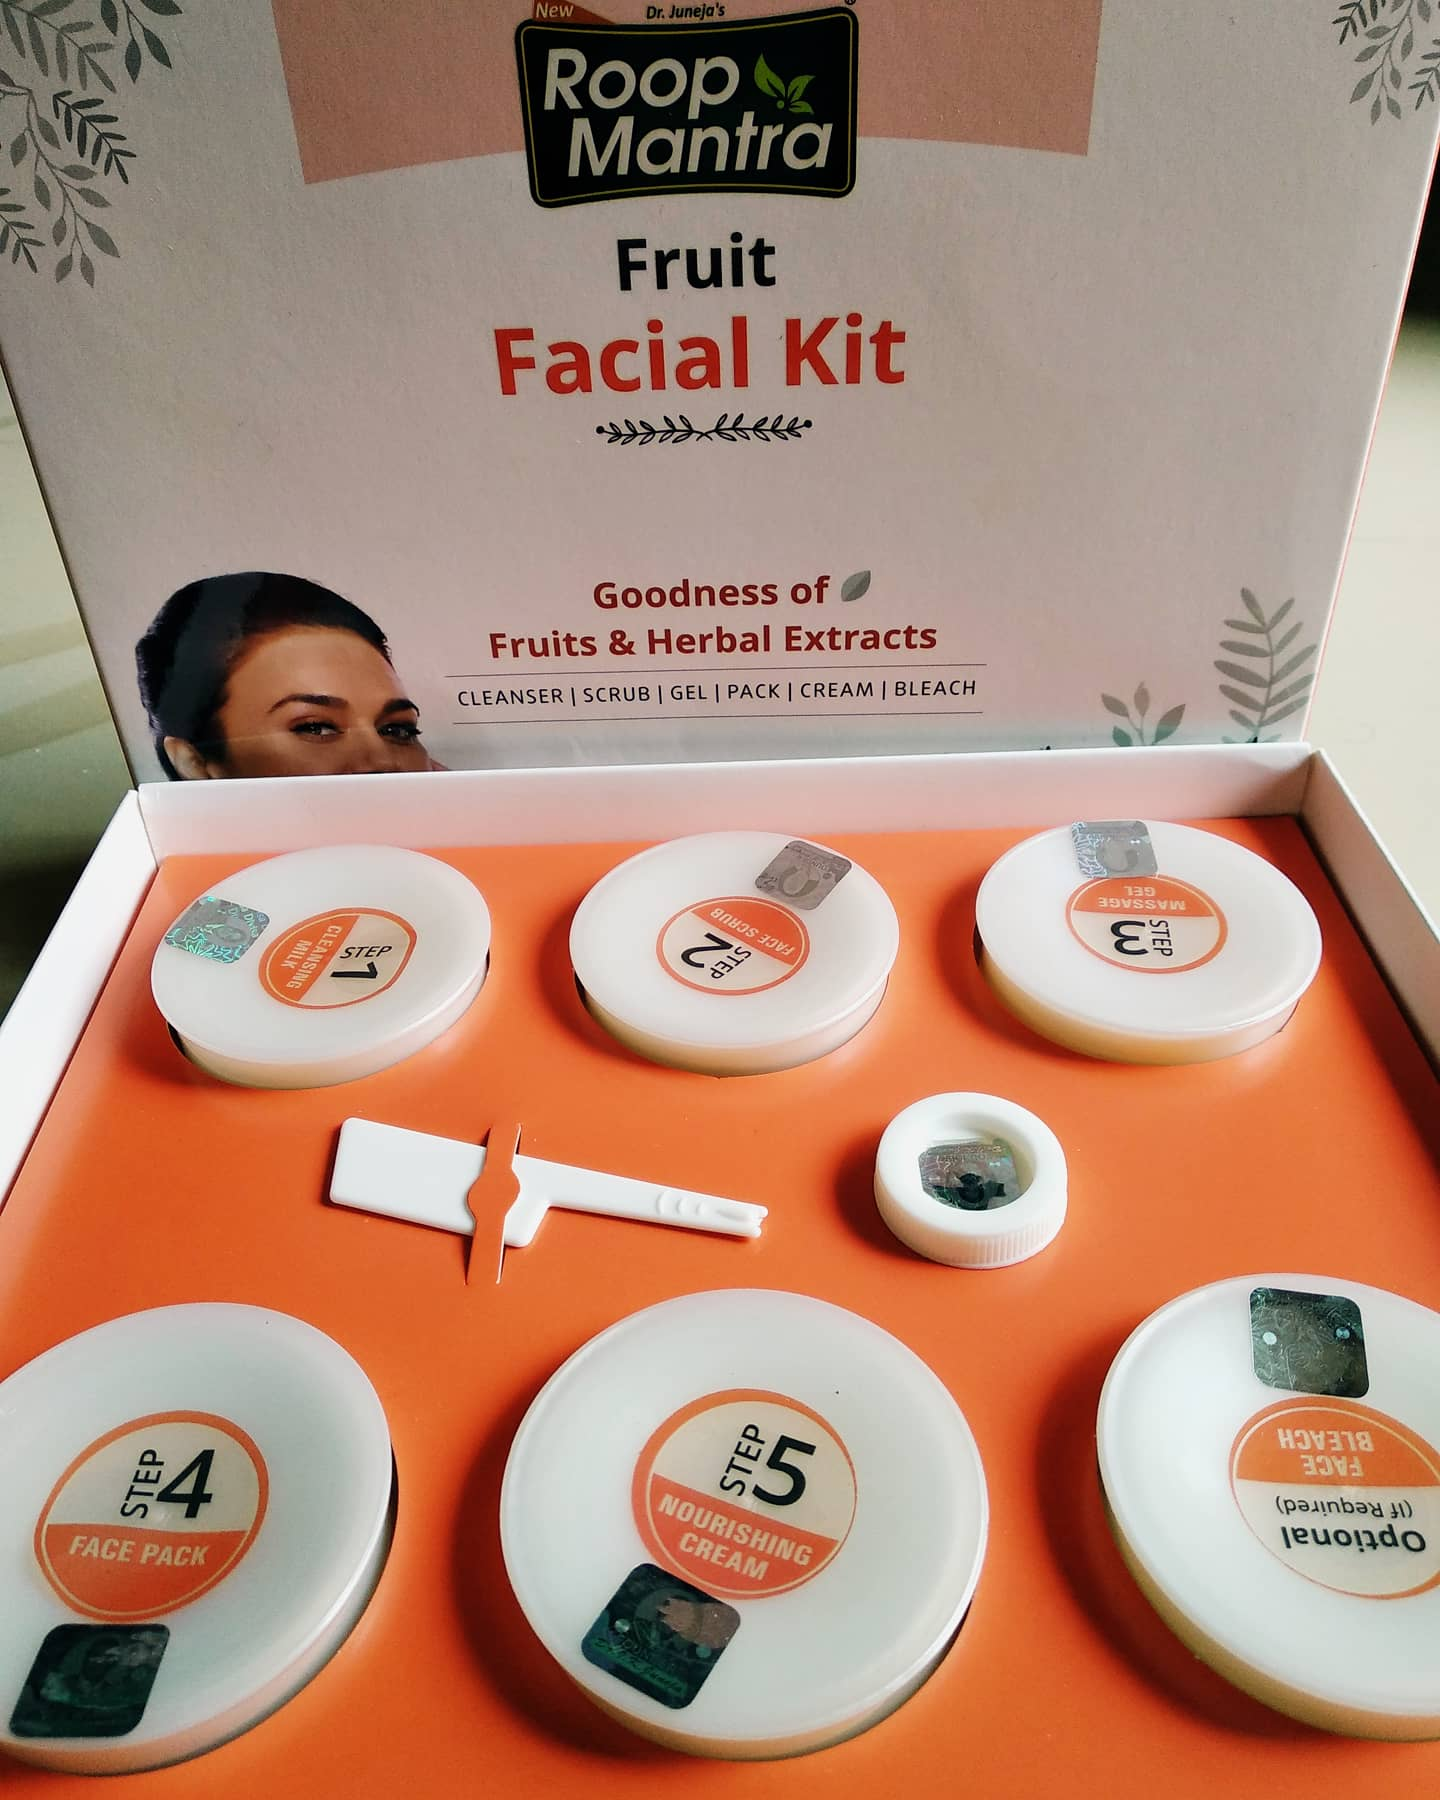 Roop Mantra Fruit Facial Kit-One of the best products i have ever used!-By ashbiha